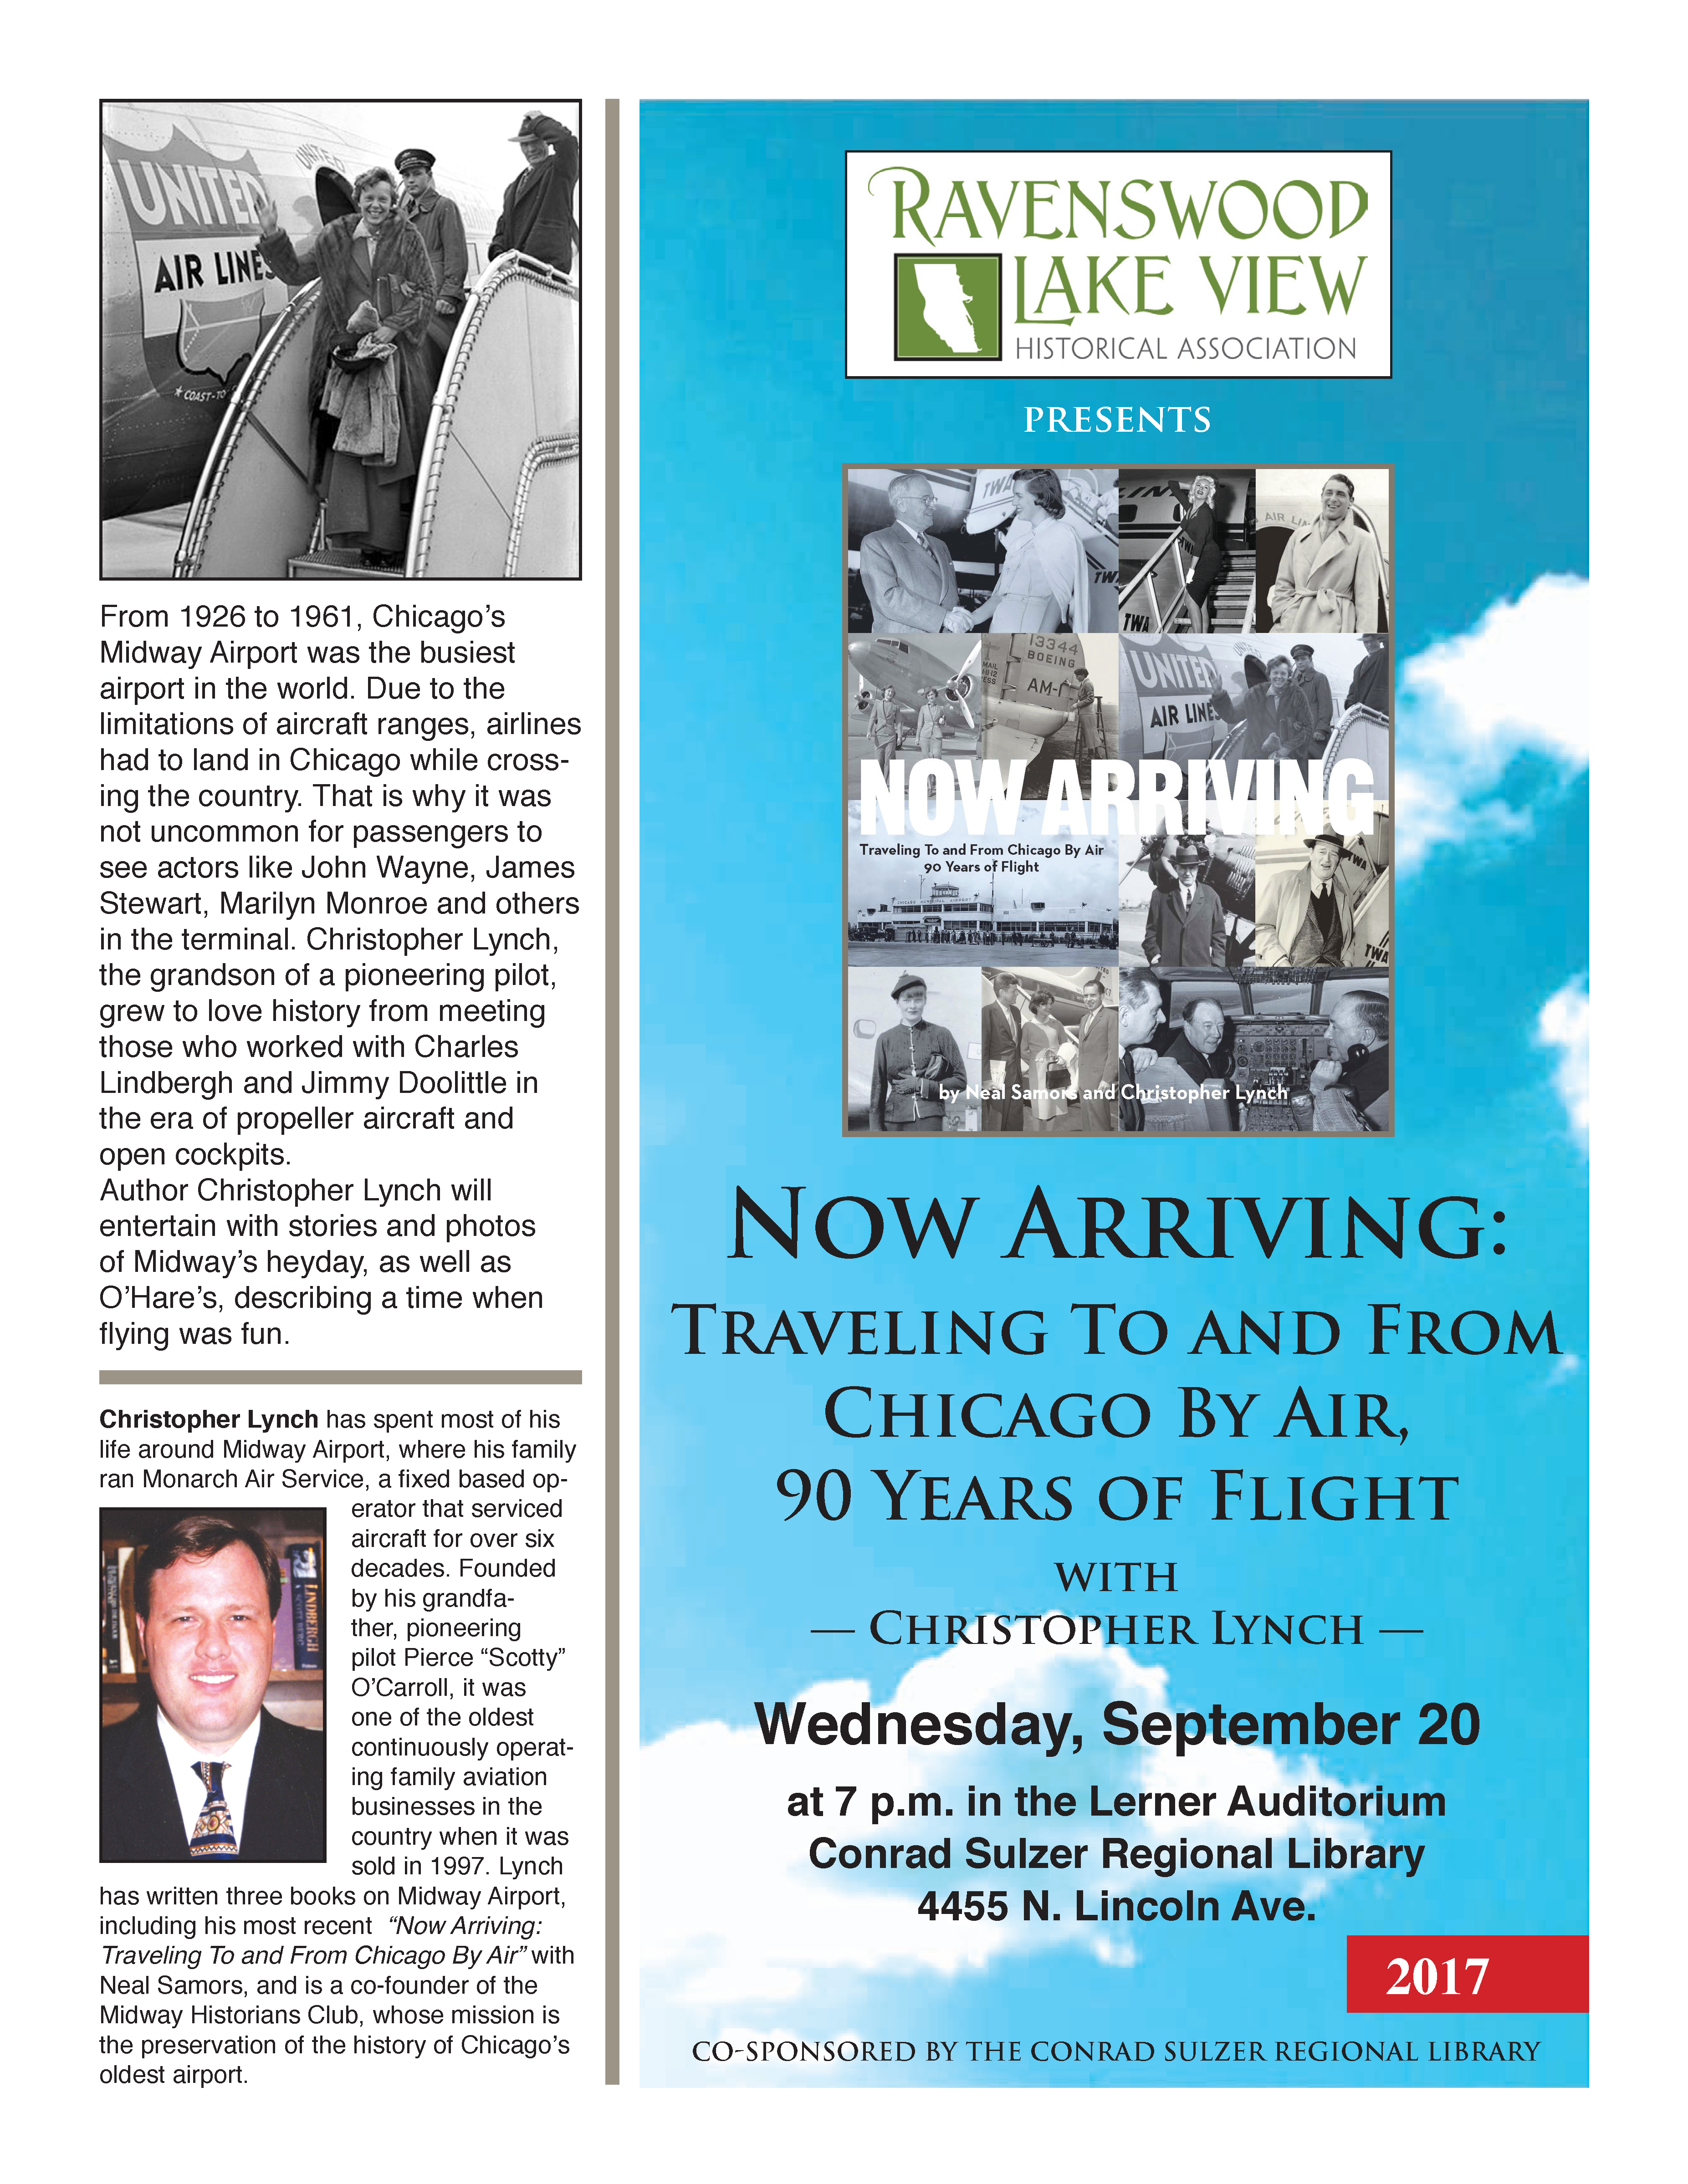 Now Arriving: Traveling to and from Chicago by Air, 90 Years of Flight - September 20, 7pm - Conrad Sulzer Regional Library 4455 N. Lincoln Ave